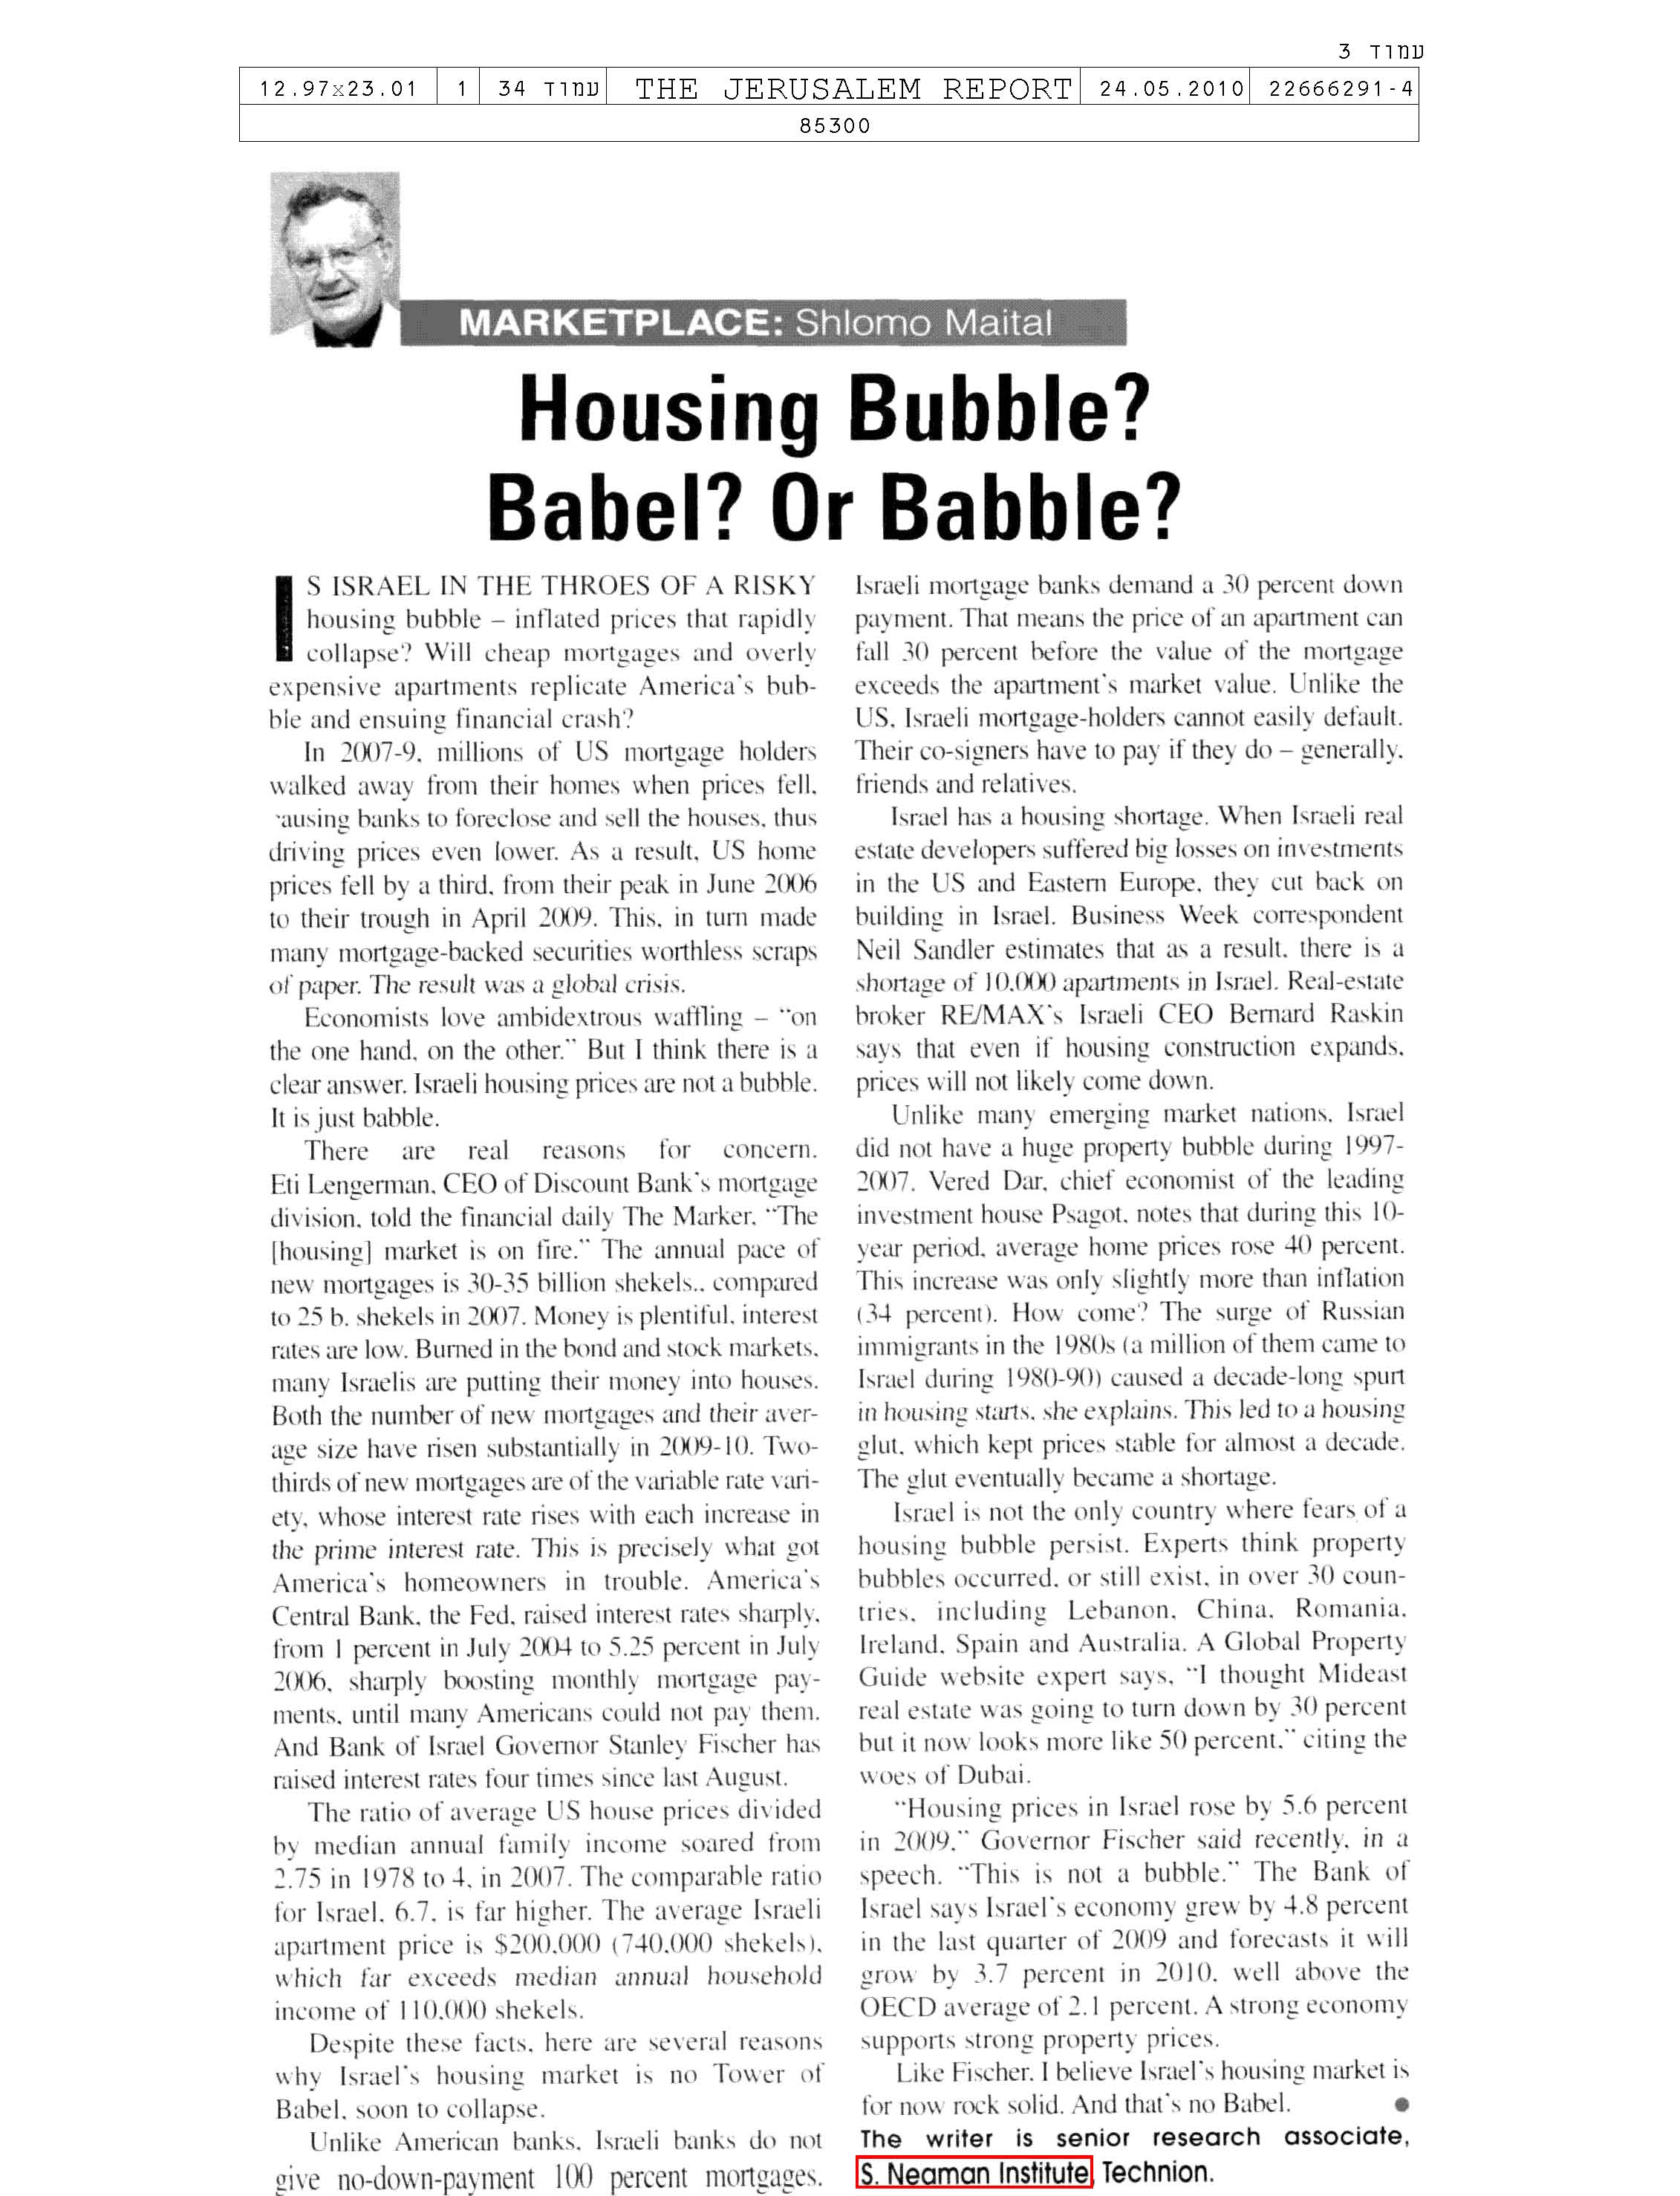 Housing Bubble? Babel? Or Babble?